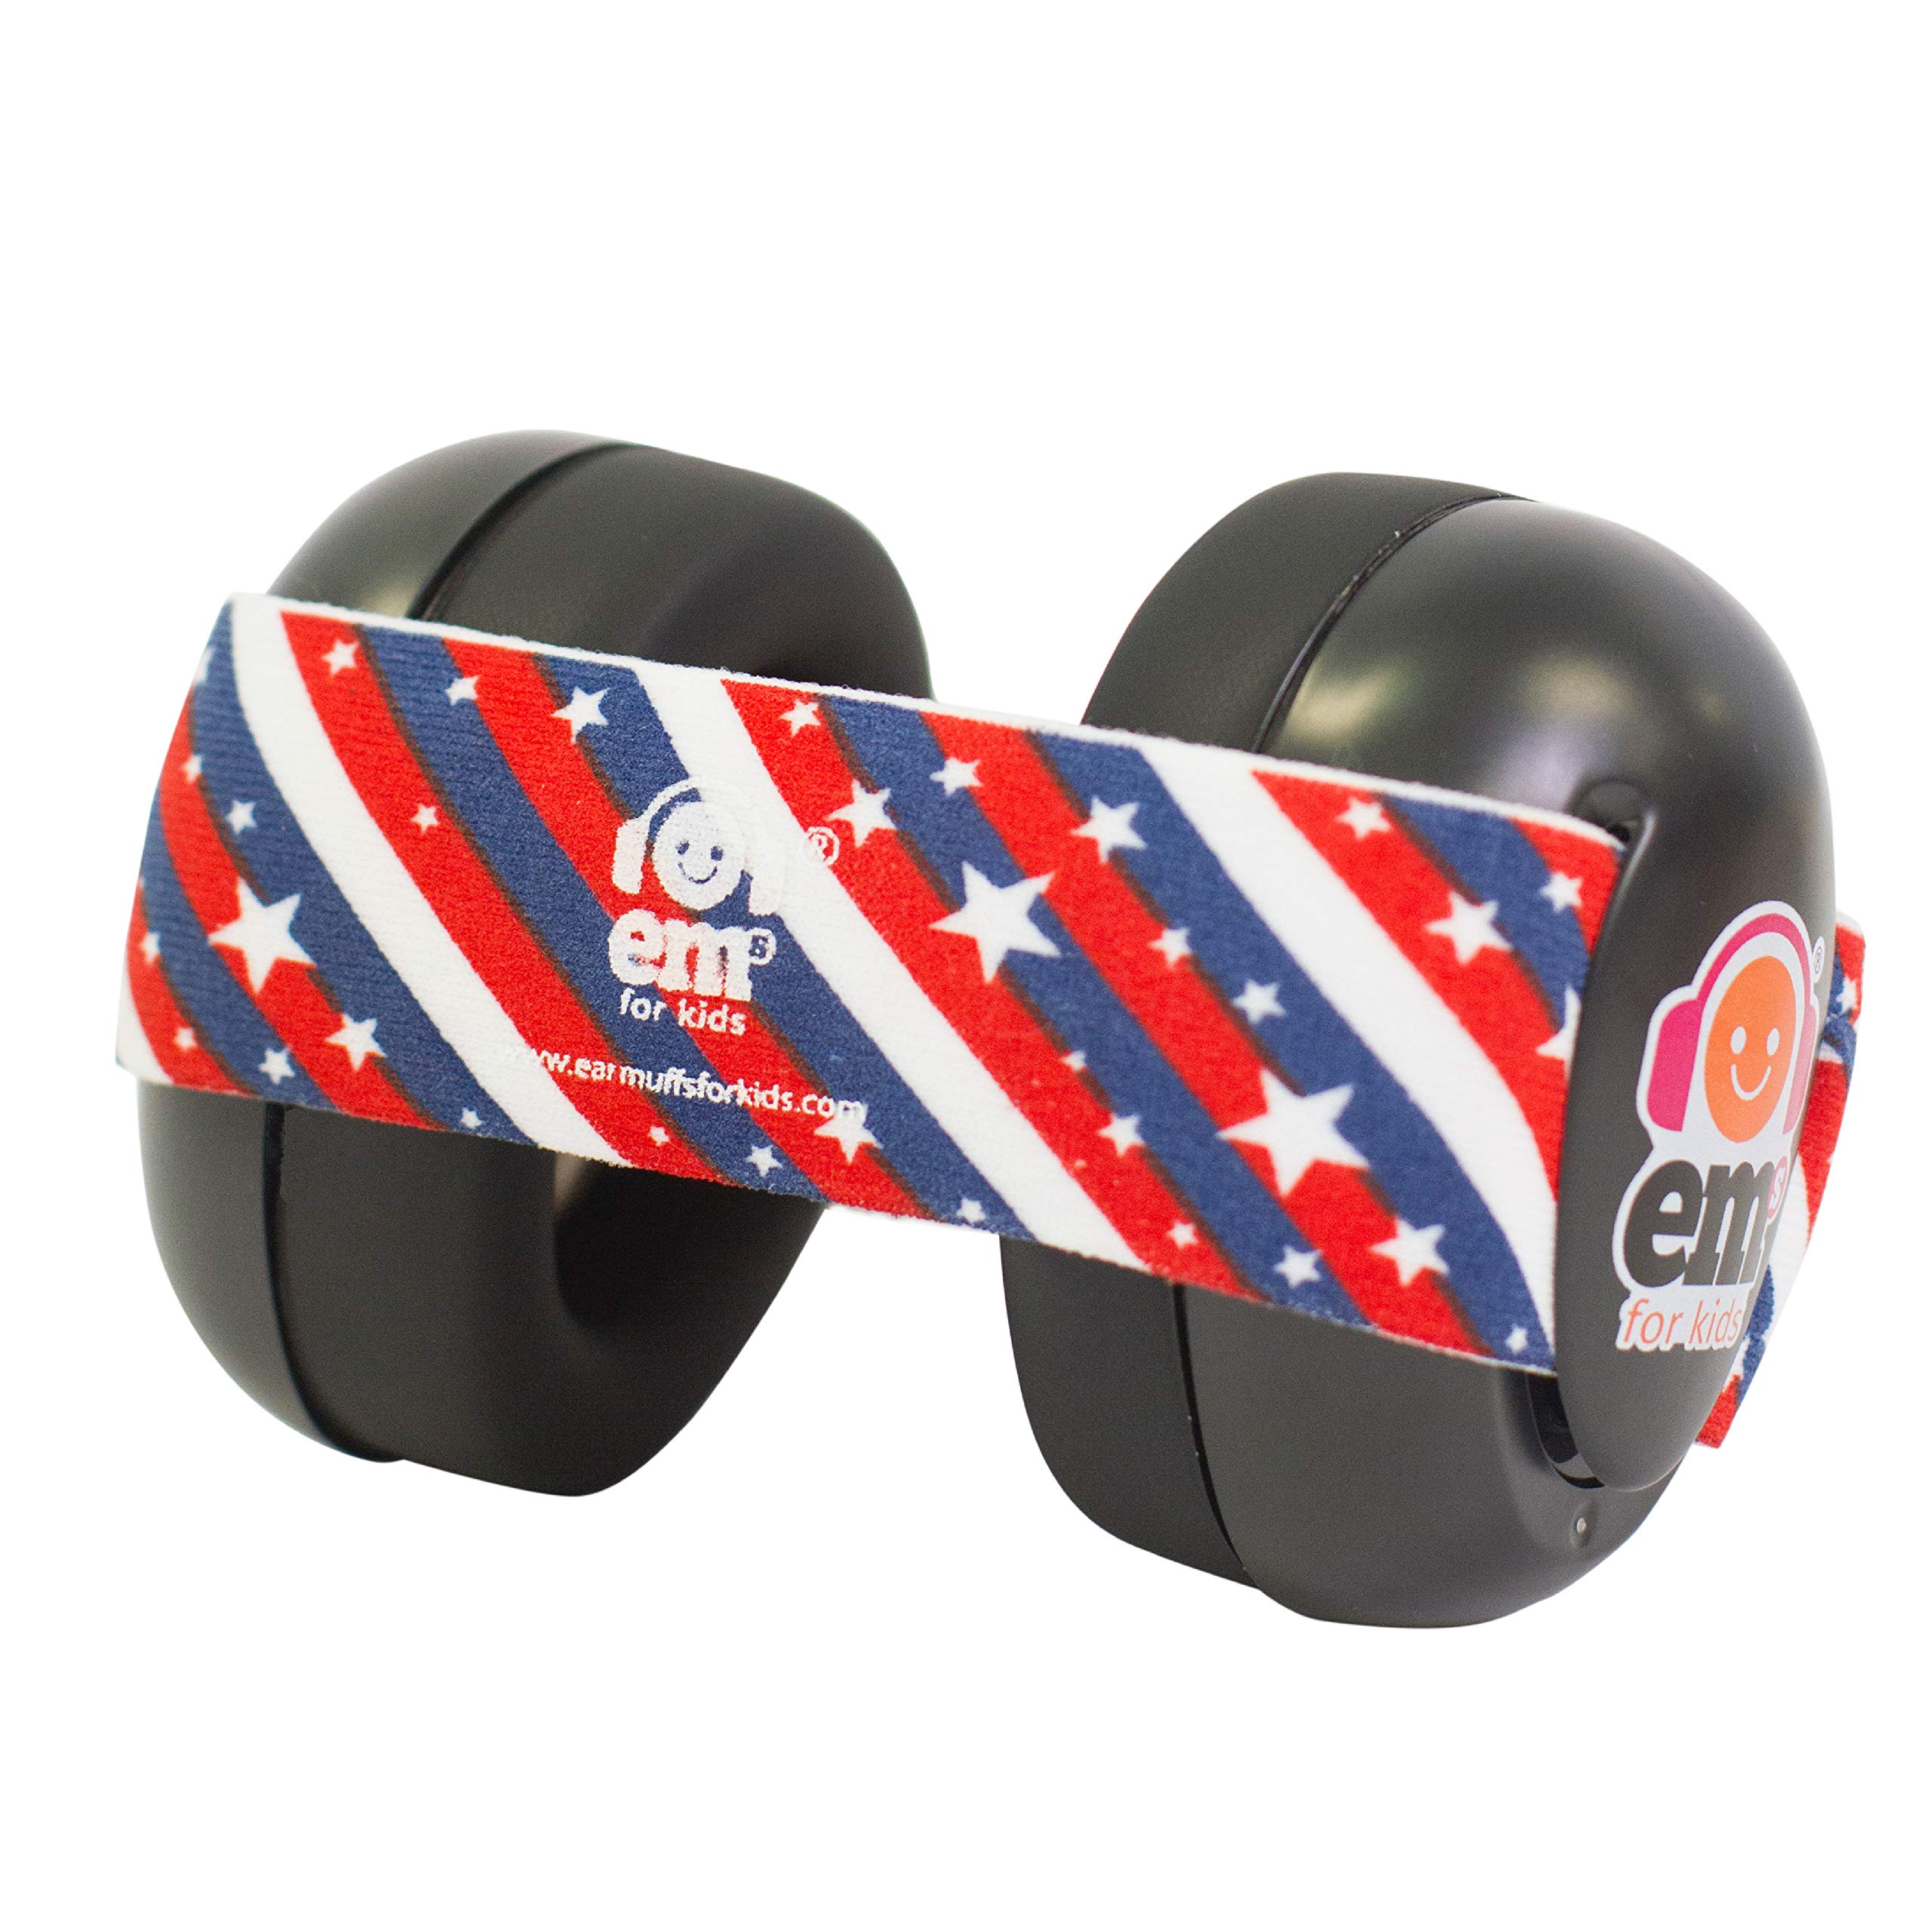 Ems for Kids Baby Earmuffs - Black with Stars n Stripes. Made in The U.S.A! The Original and ONLY Earmuffs Designed specifically for Babies Since 2009